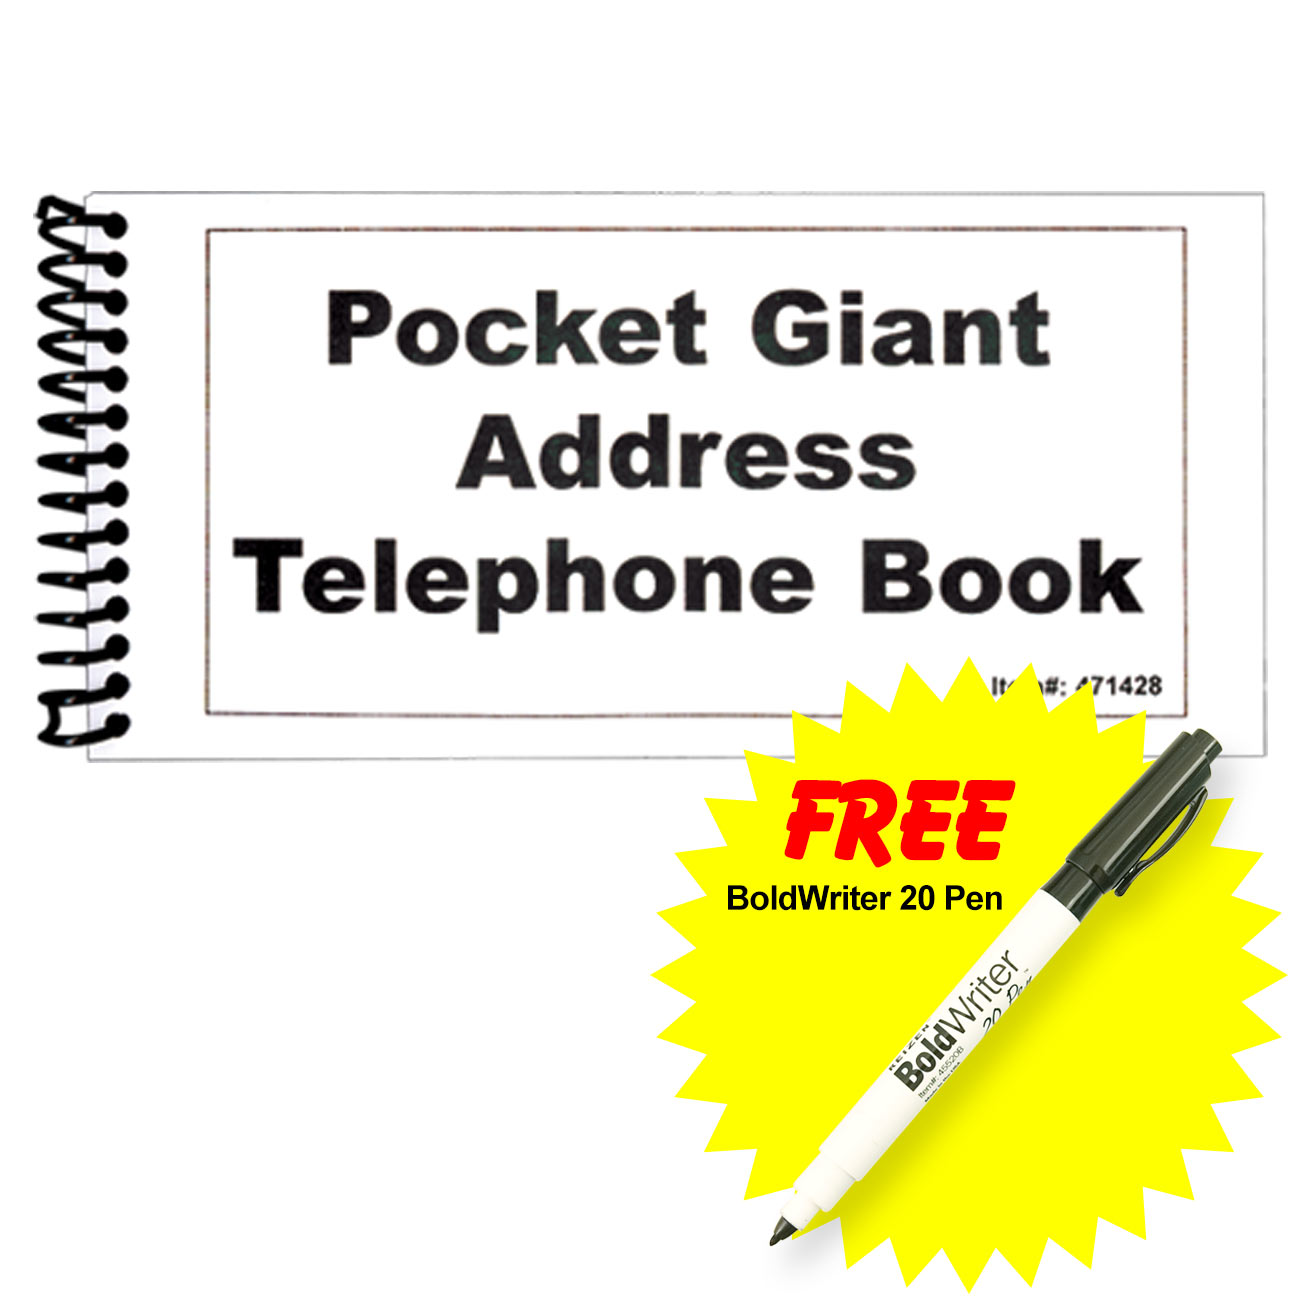 Pocket Large Print Address Book with BoldWriter 20 Pen